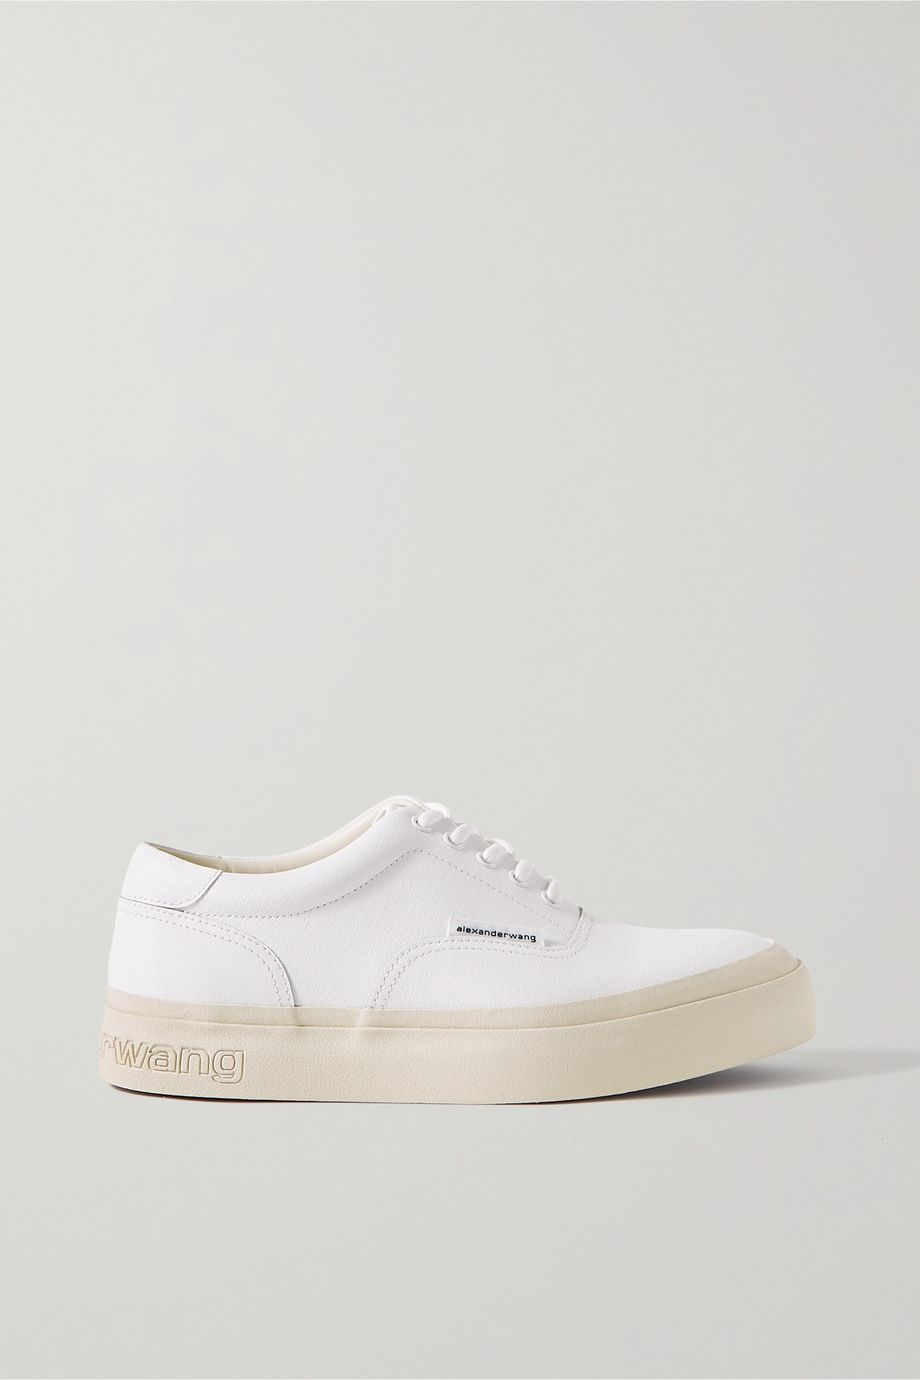 Alexander Wang Andy textured-leather sneakers